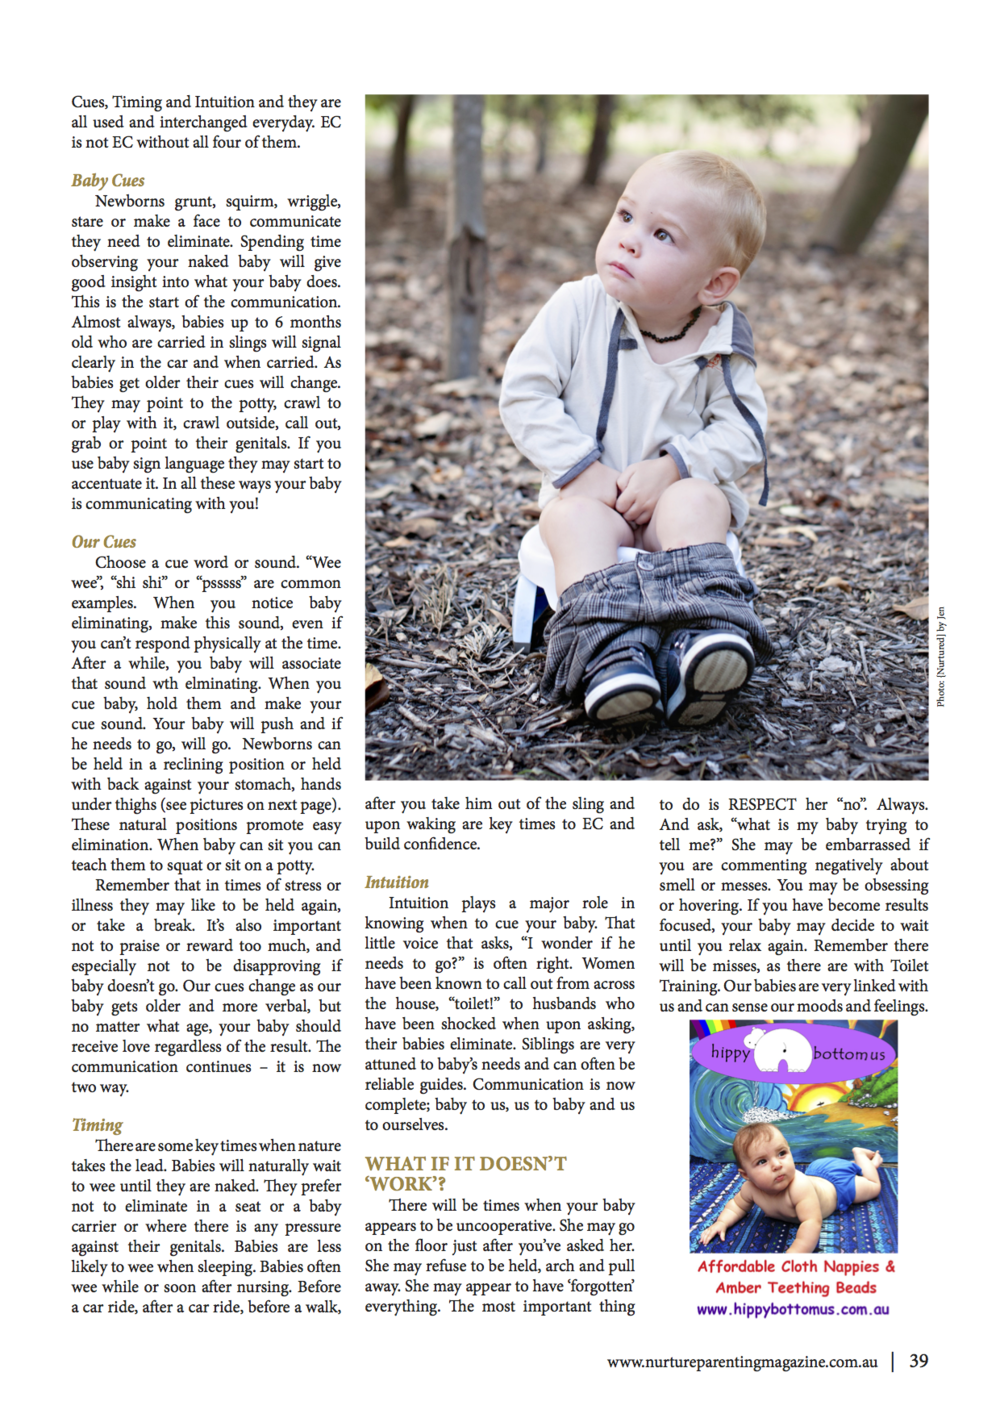 NURTURE Parenting Magazine - Elimination Communication